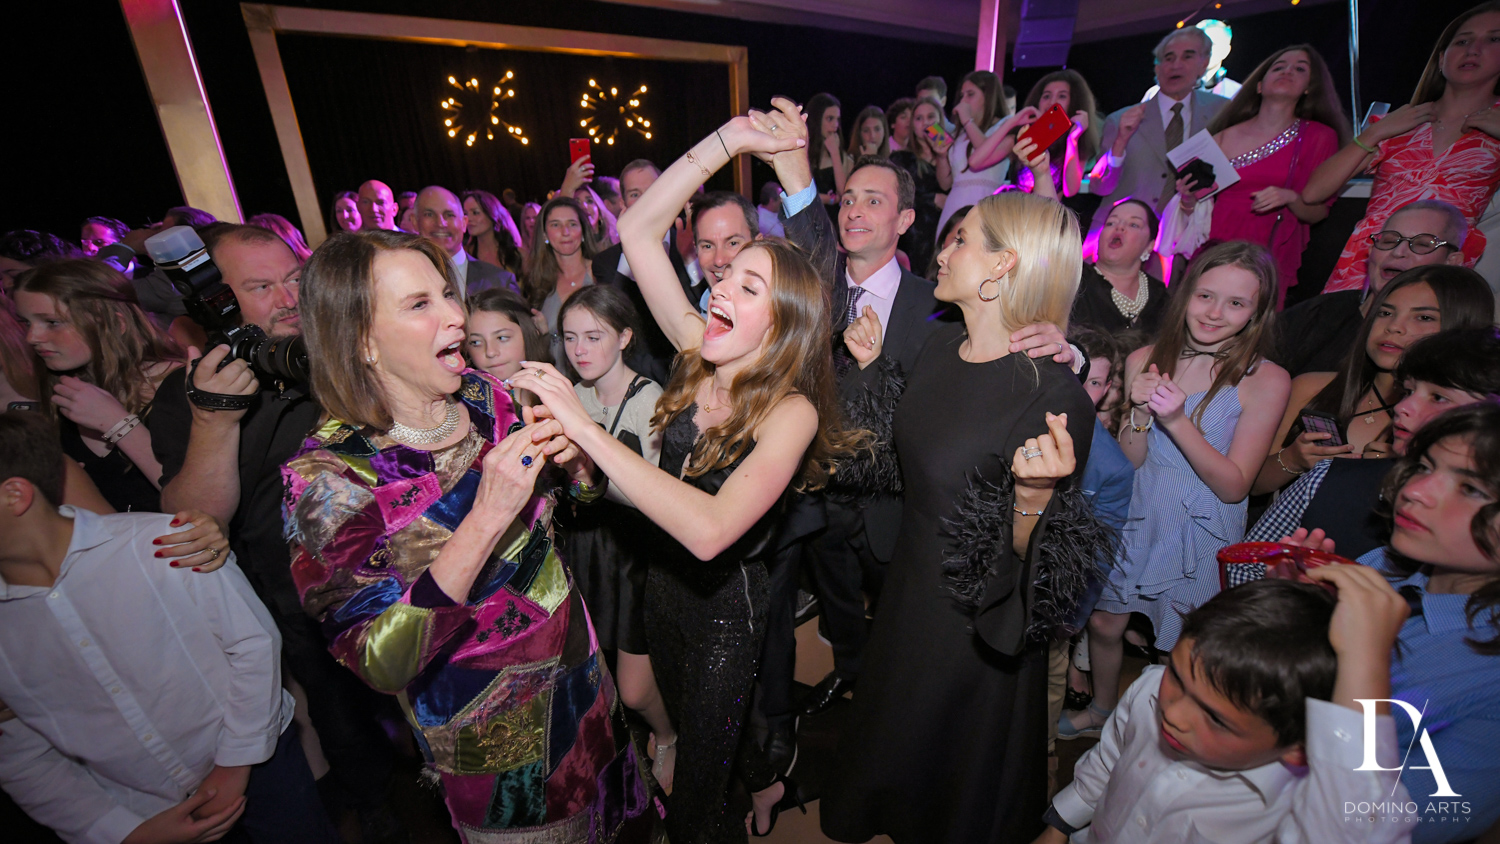 fun hora at Designer invitations at Stylish Architectural B'Nai Mitzvah at the NEW JW Marriott Miami Turnberry Resort & Spa by Domino Arts Photography